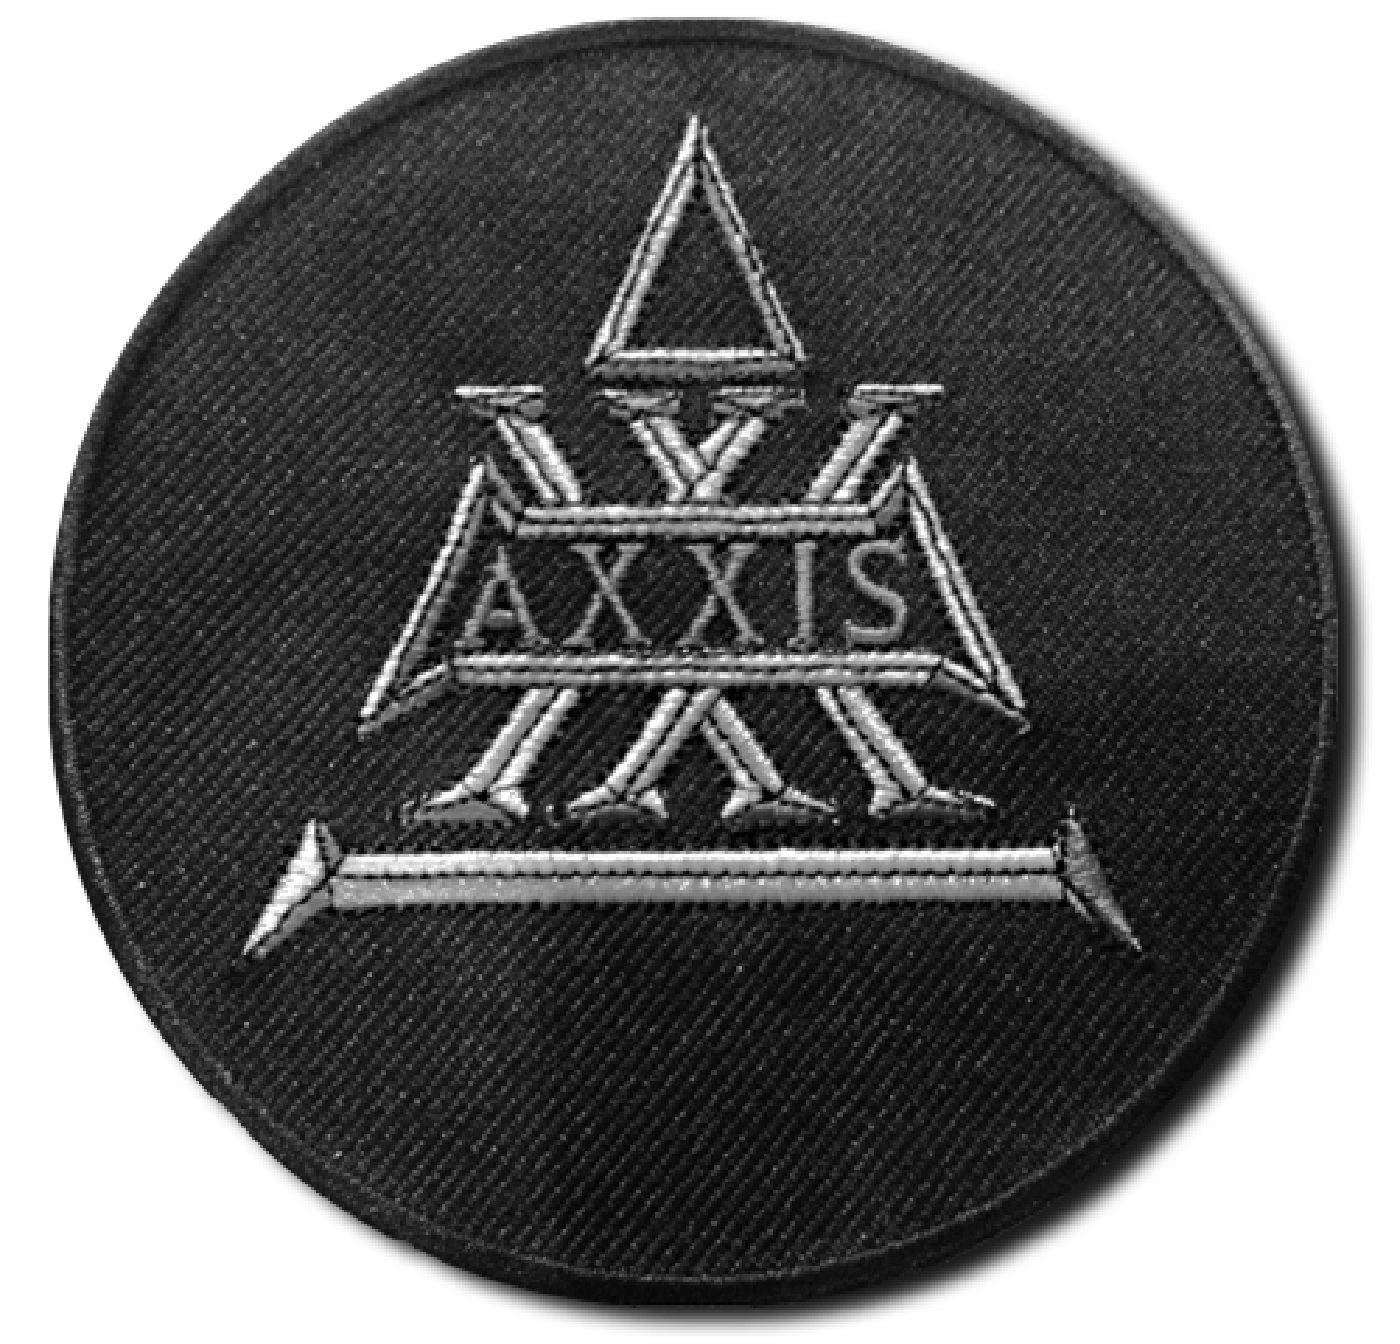 AXXIS patch